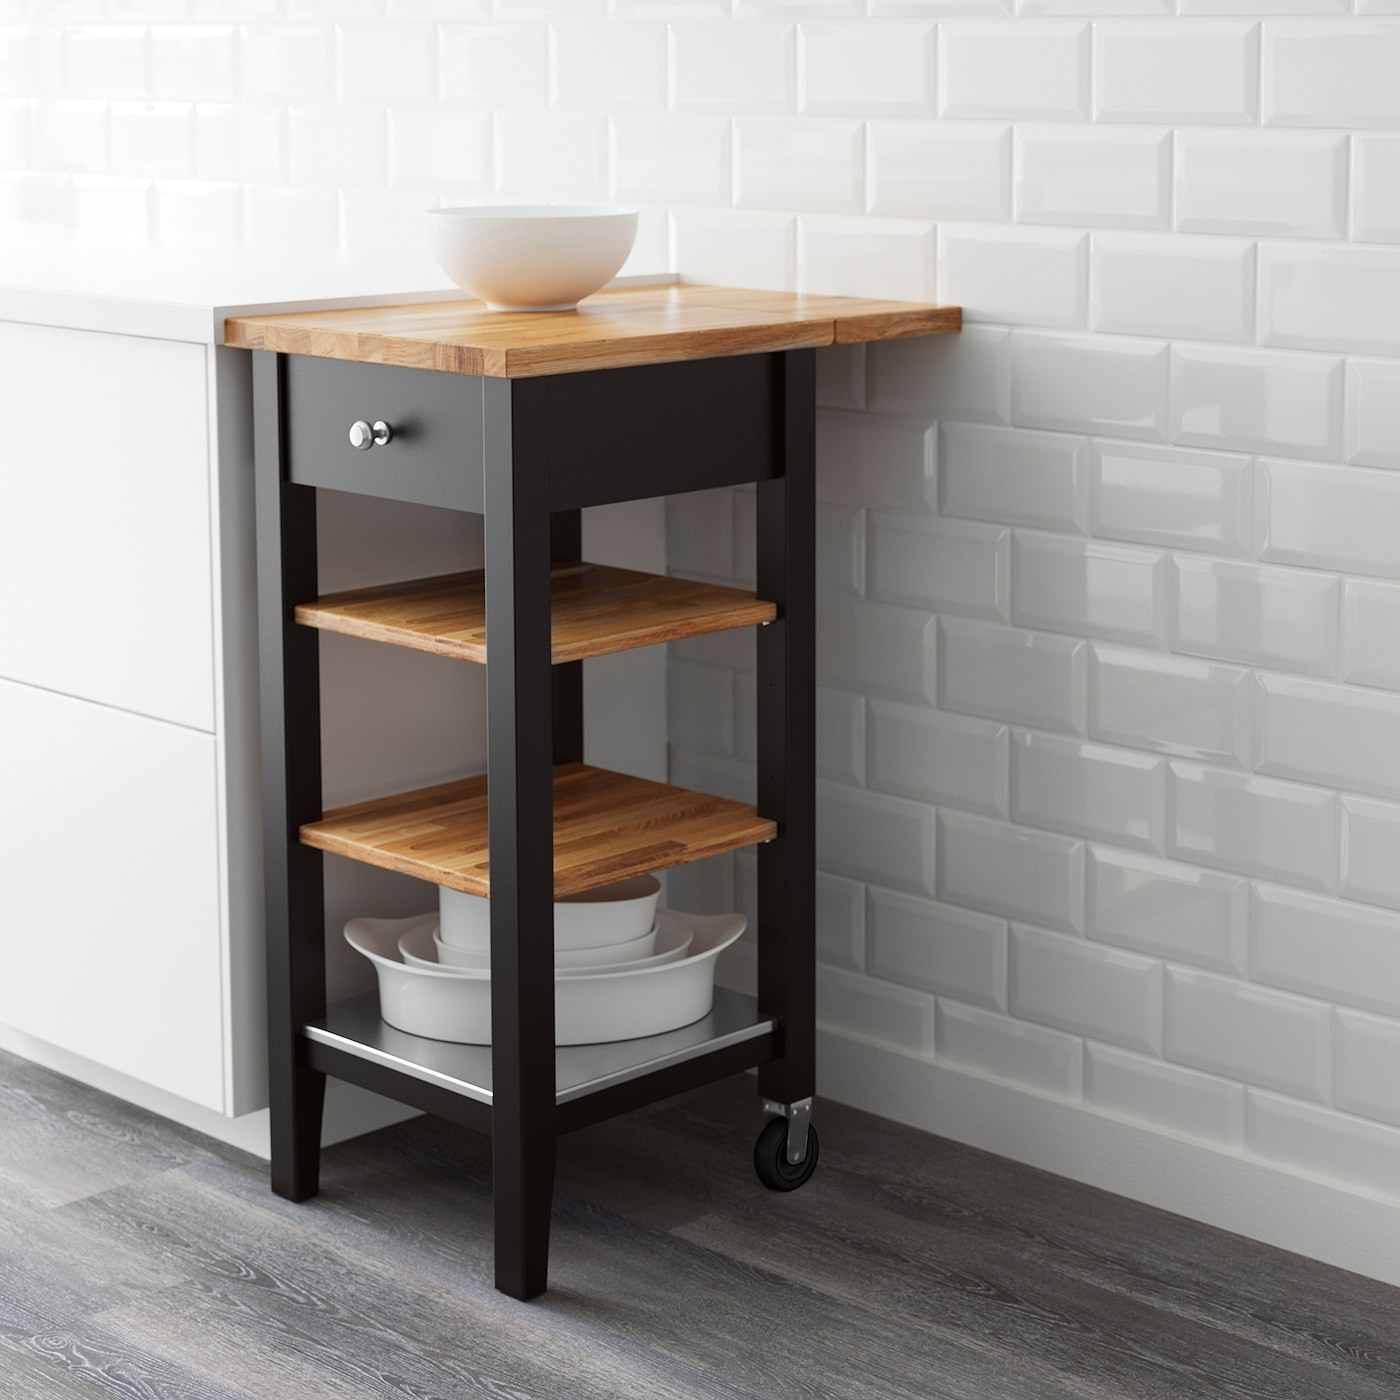 STENSTORP Kitchen trolley - black-brown/oak 8x8x8 cm